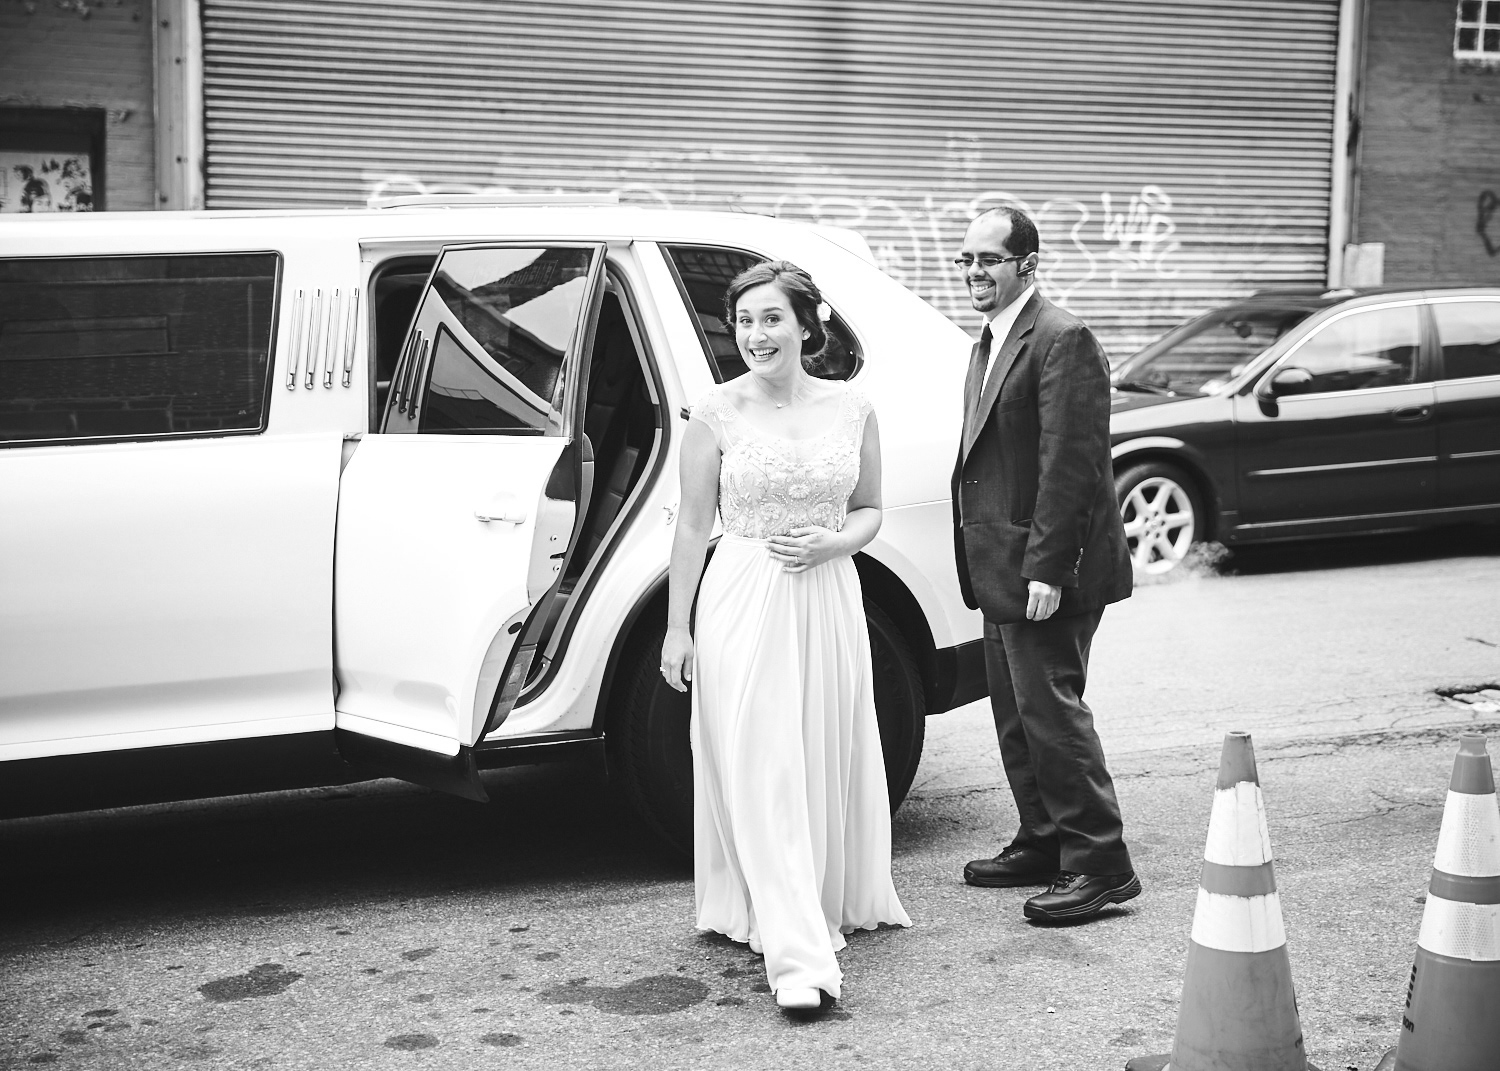 161022_A&B_26BridgeStWedding_By_BriJohnsonWeddings_0029.jpg